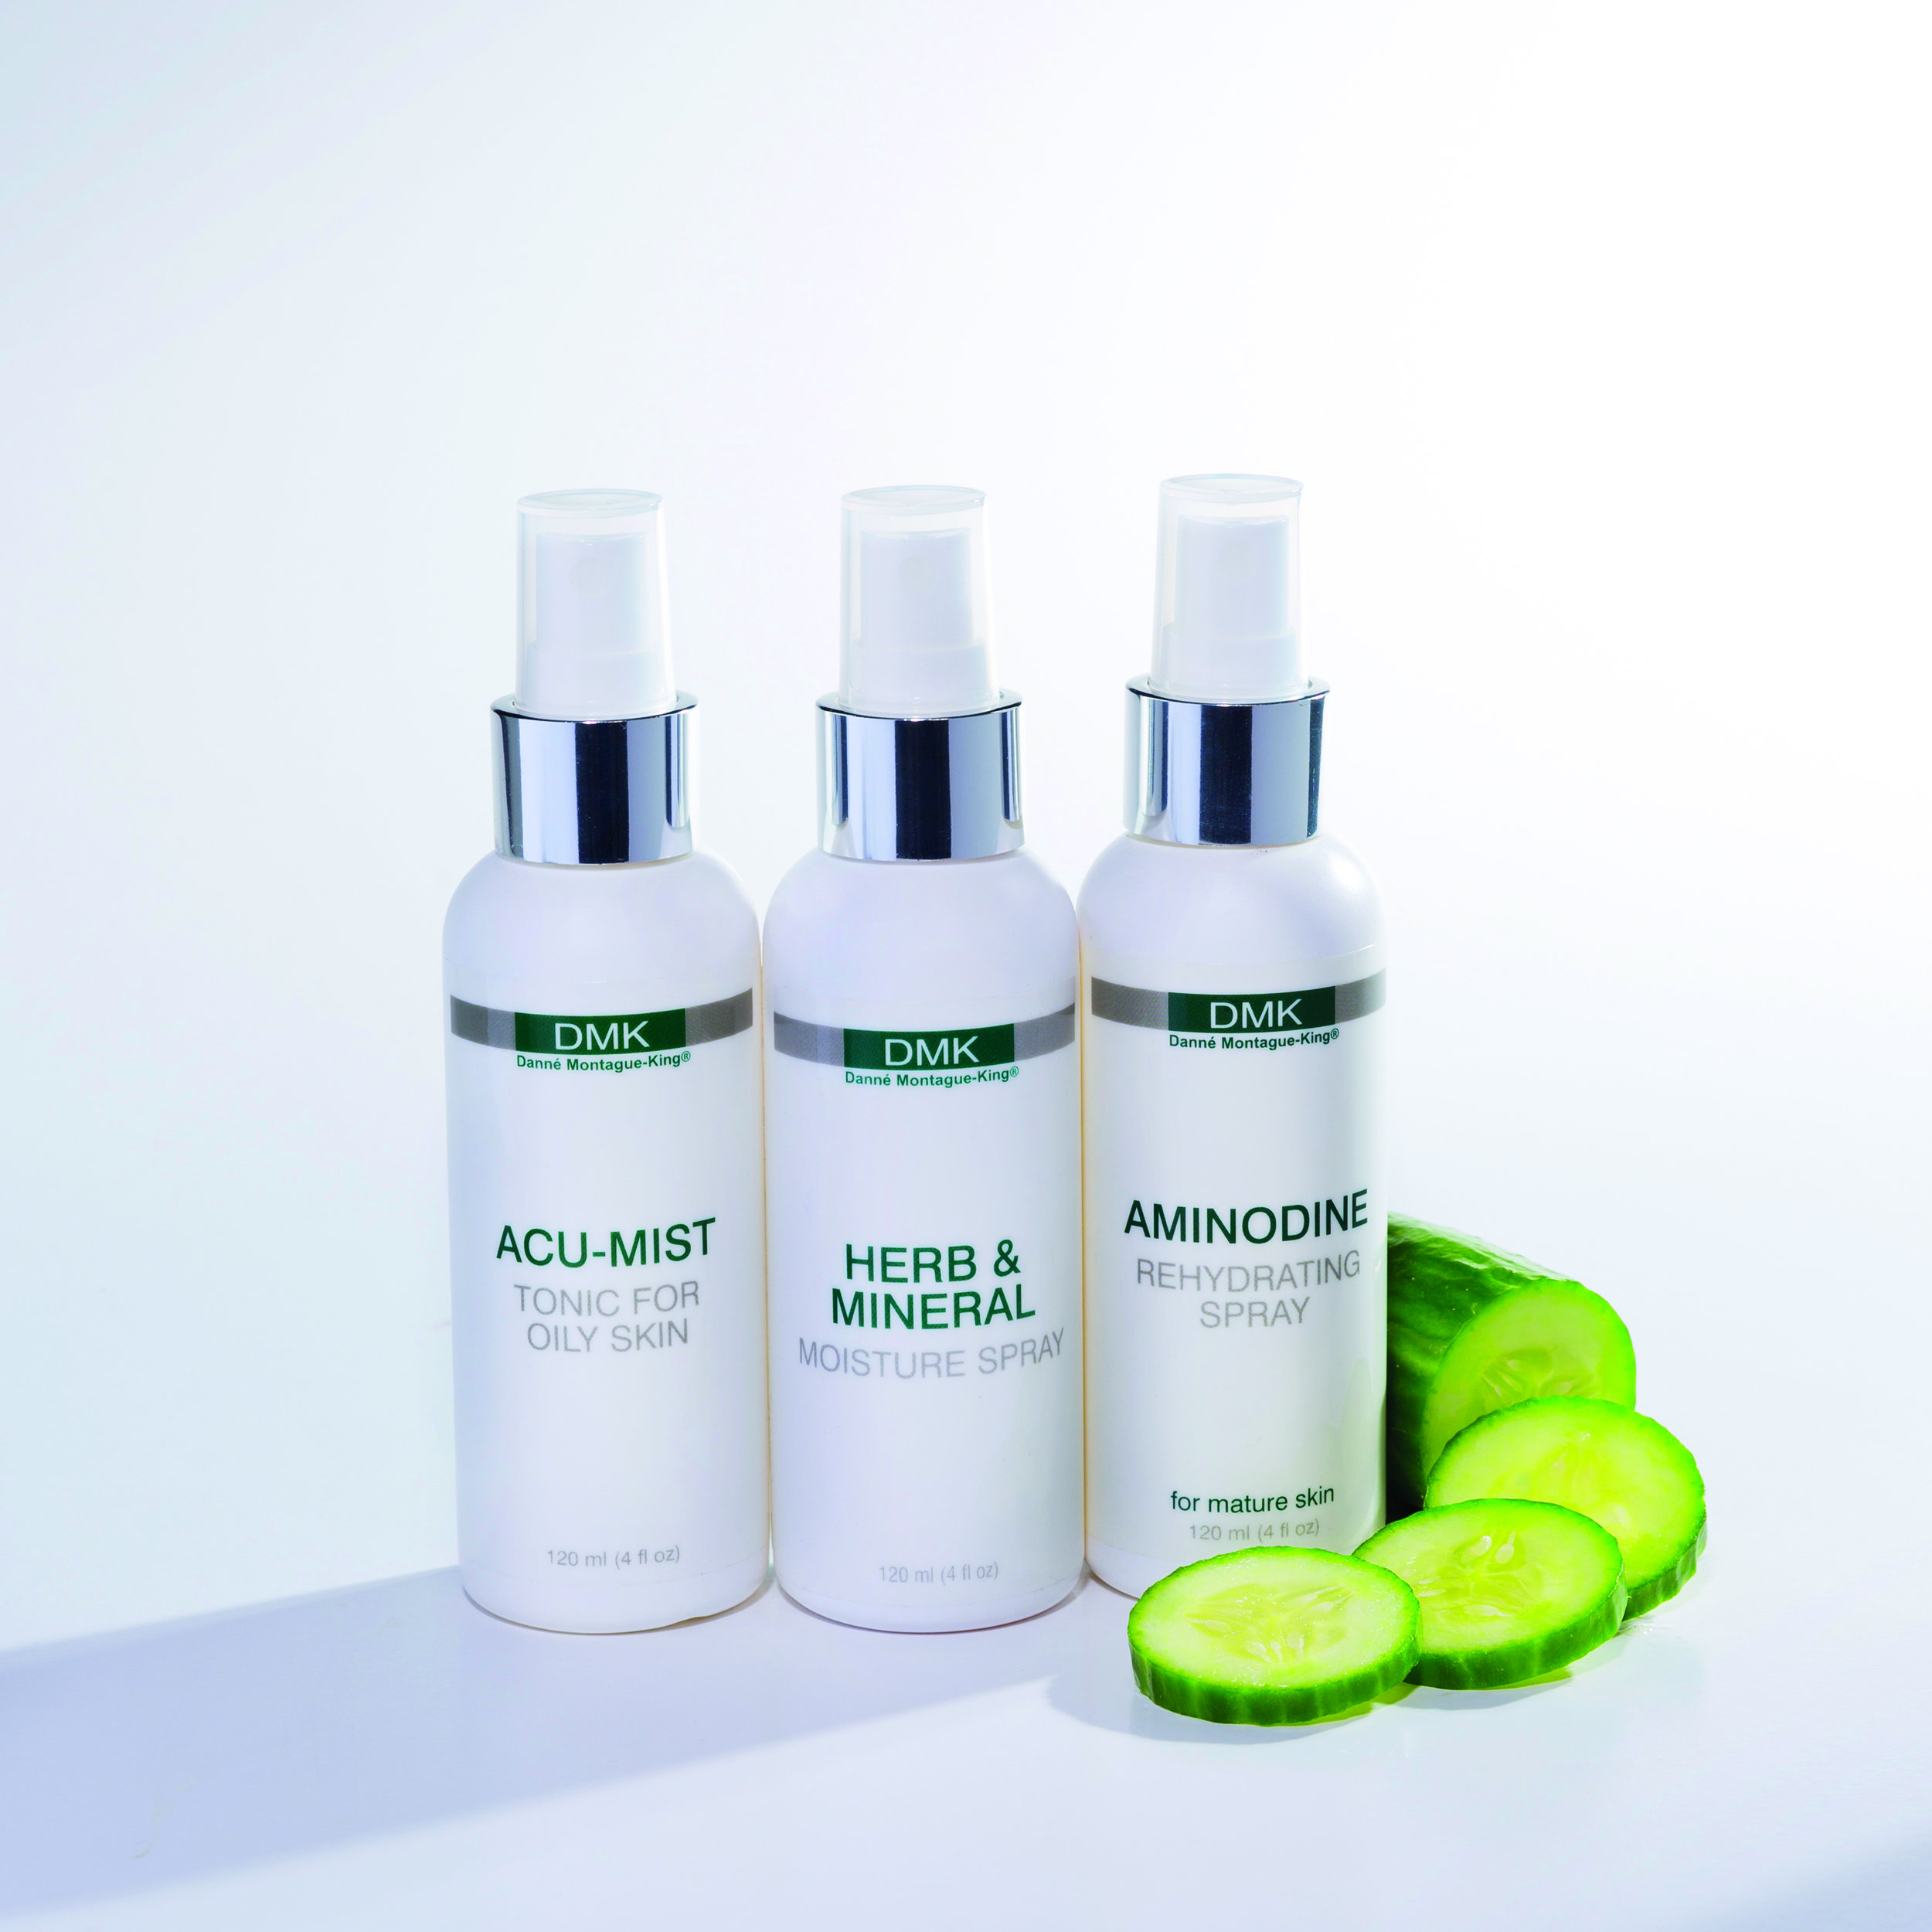 DMK's revolutionary concept of REMOVE, REBUILD, PROTECT, MAINTAIN aims to match an individual's biochemistry with the appropriate skin therapy. Professional skin revision products deliver superior aesthetic revision